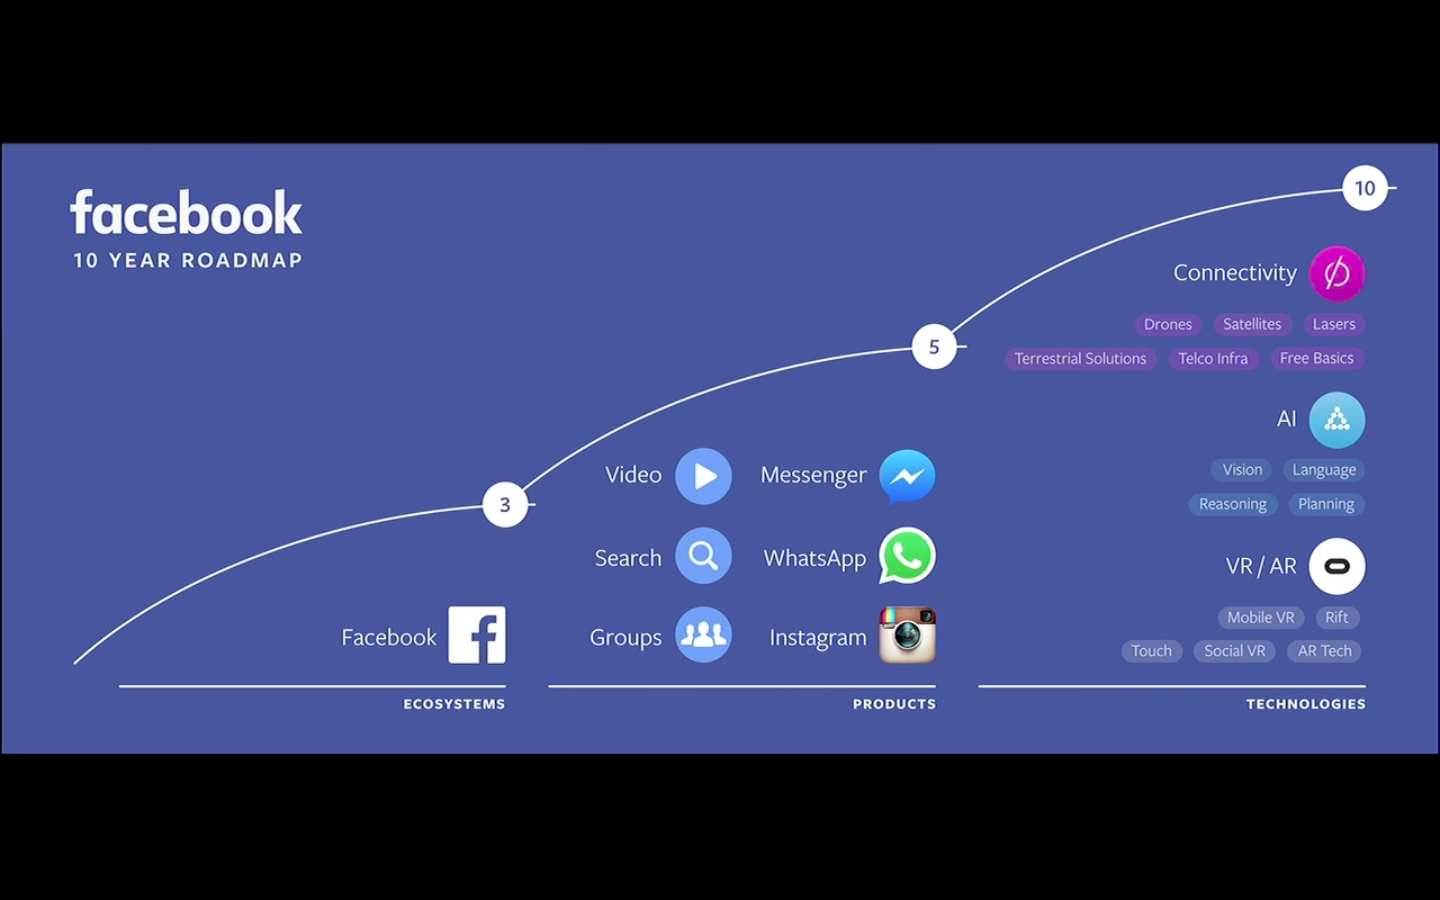 Mark Zuckerberg explains Facebook's 10 year roadmap at the F8 developer conference on April 12, 2016 in San Francisco, Calif.